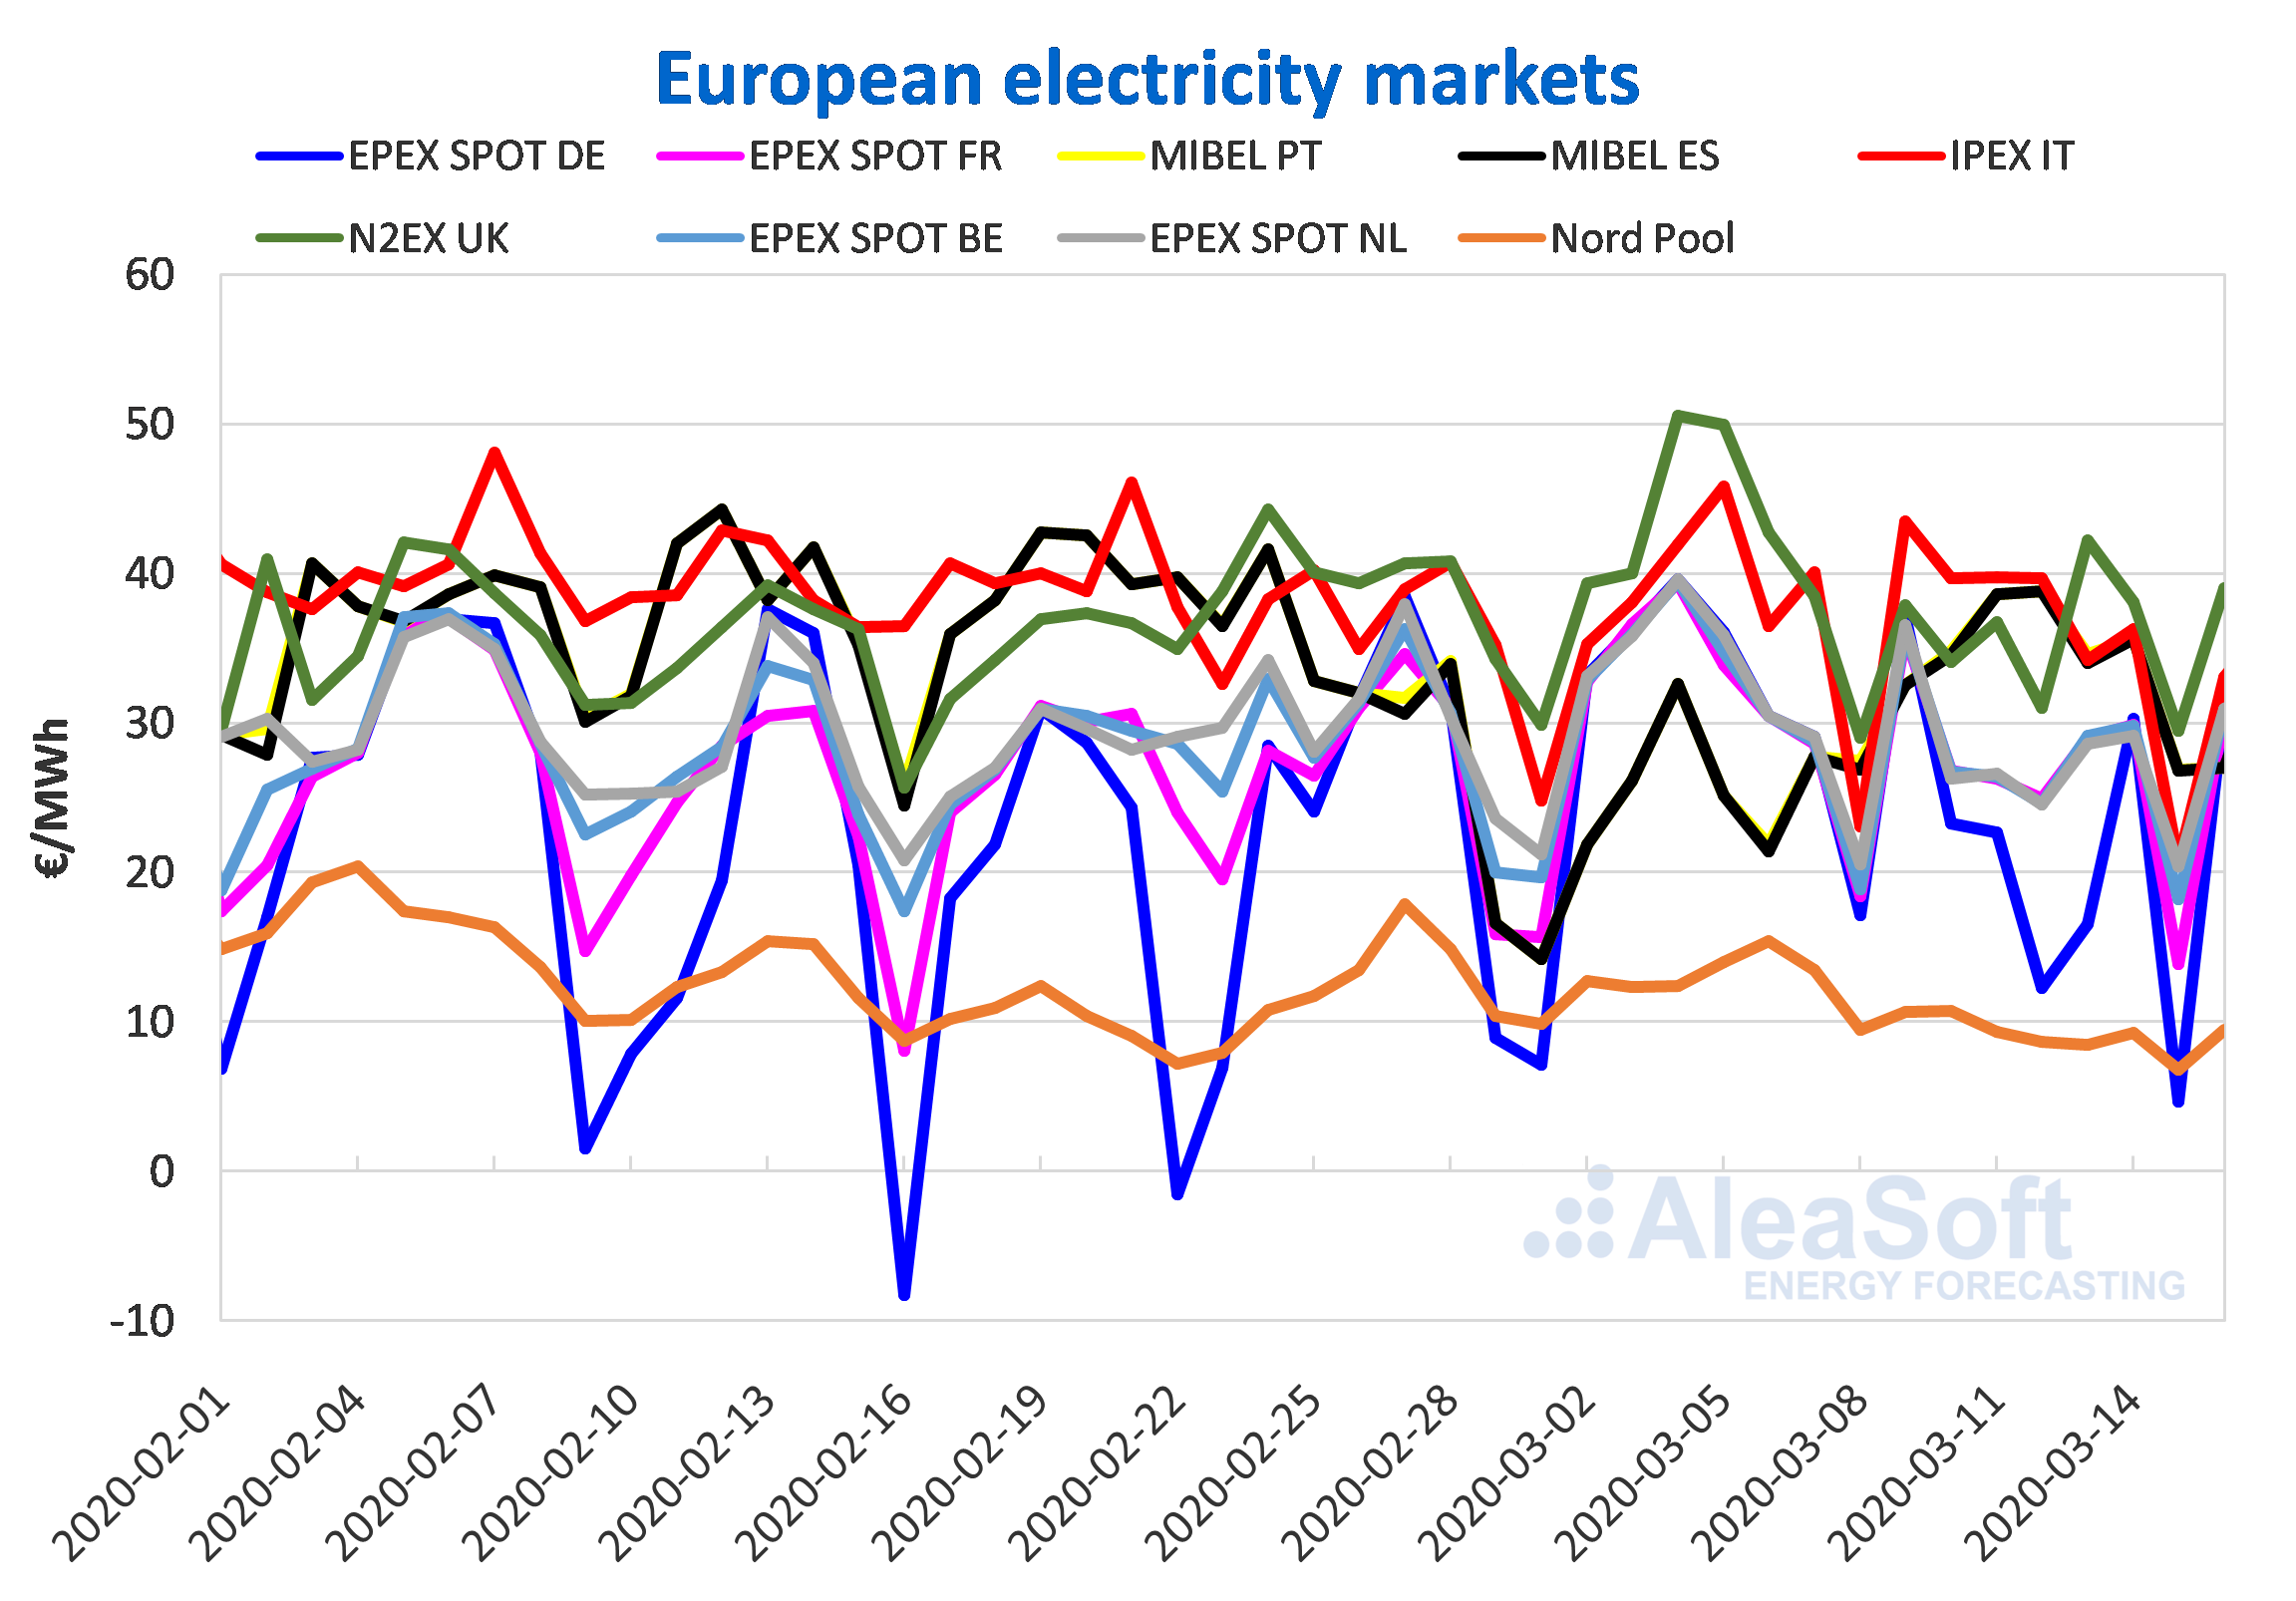 European electricity market prices